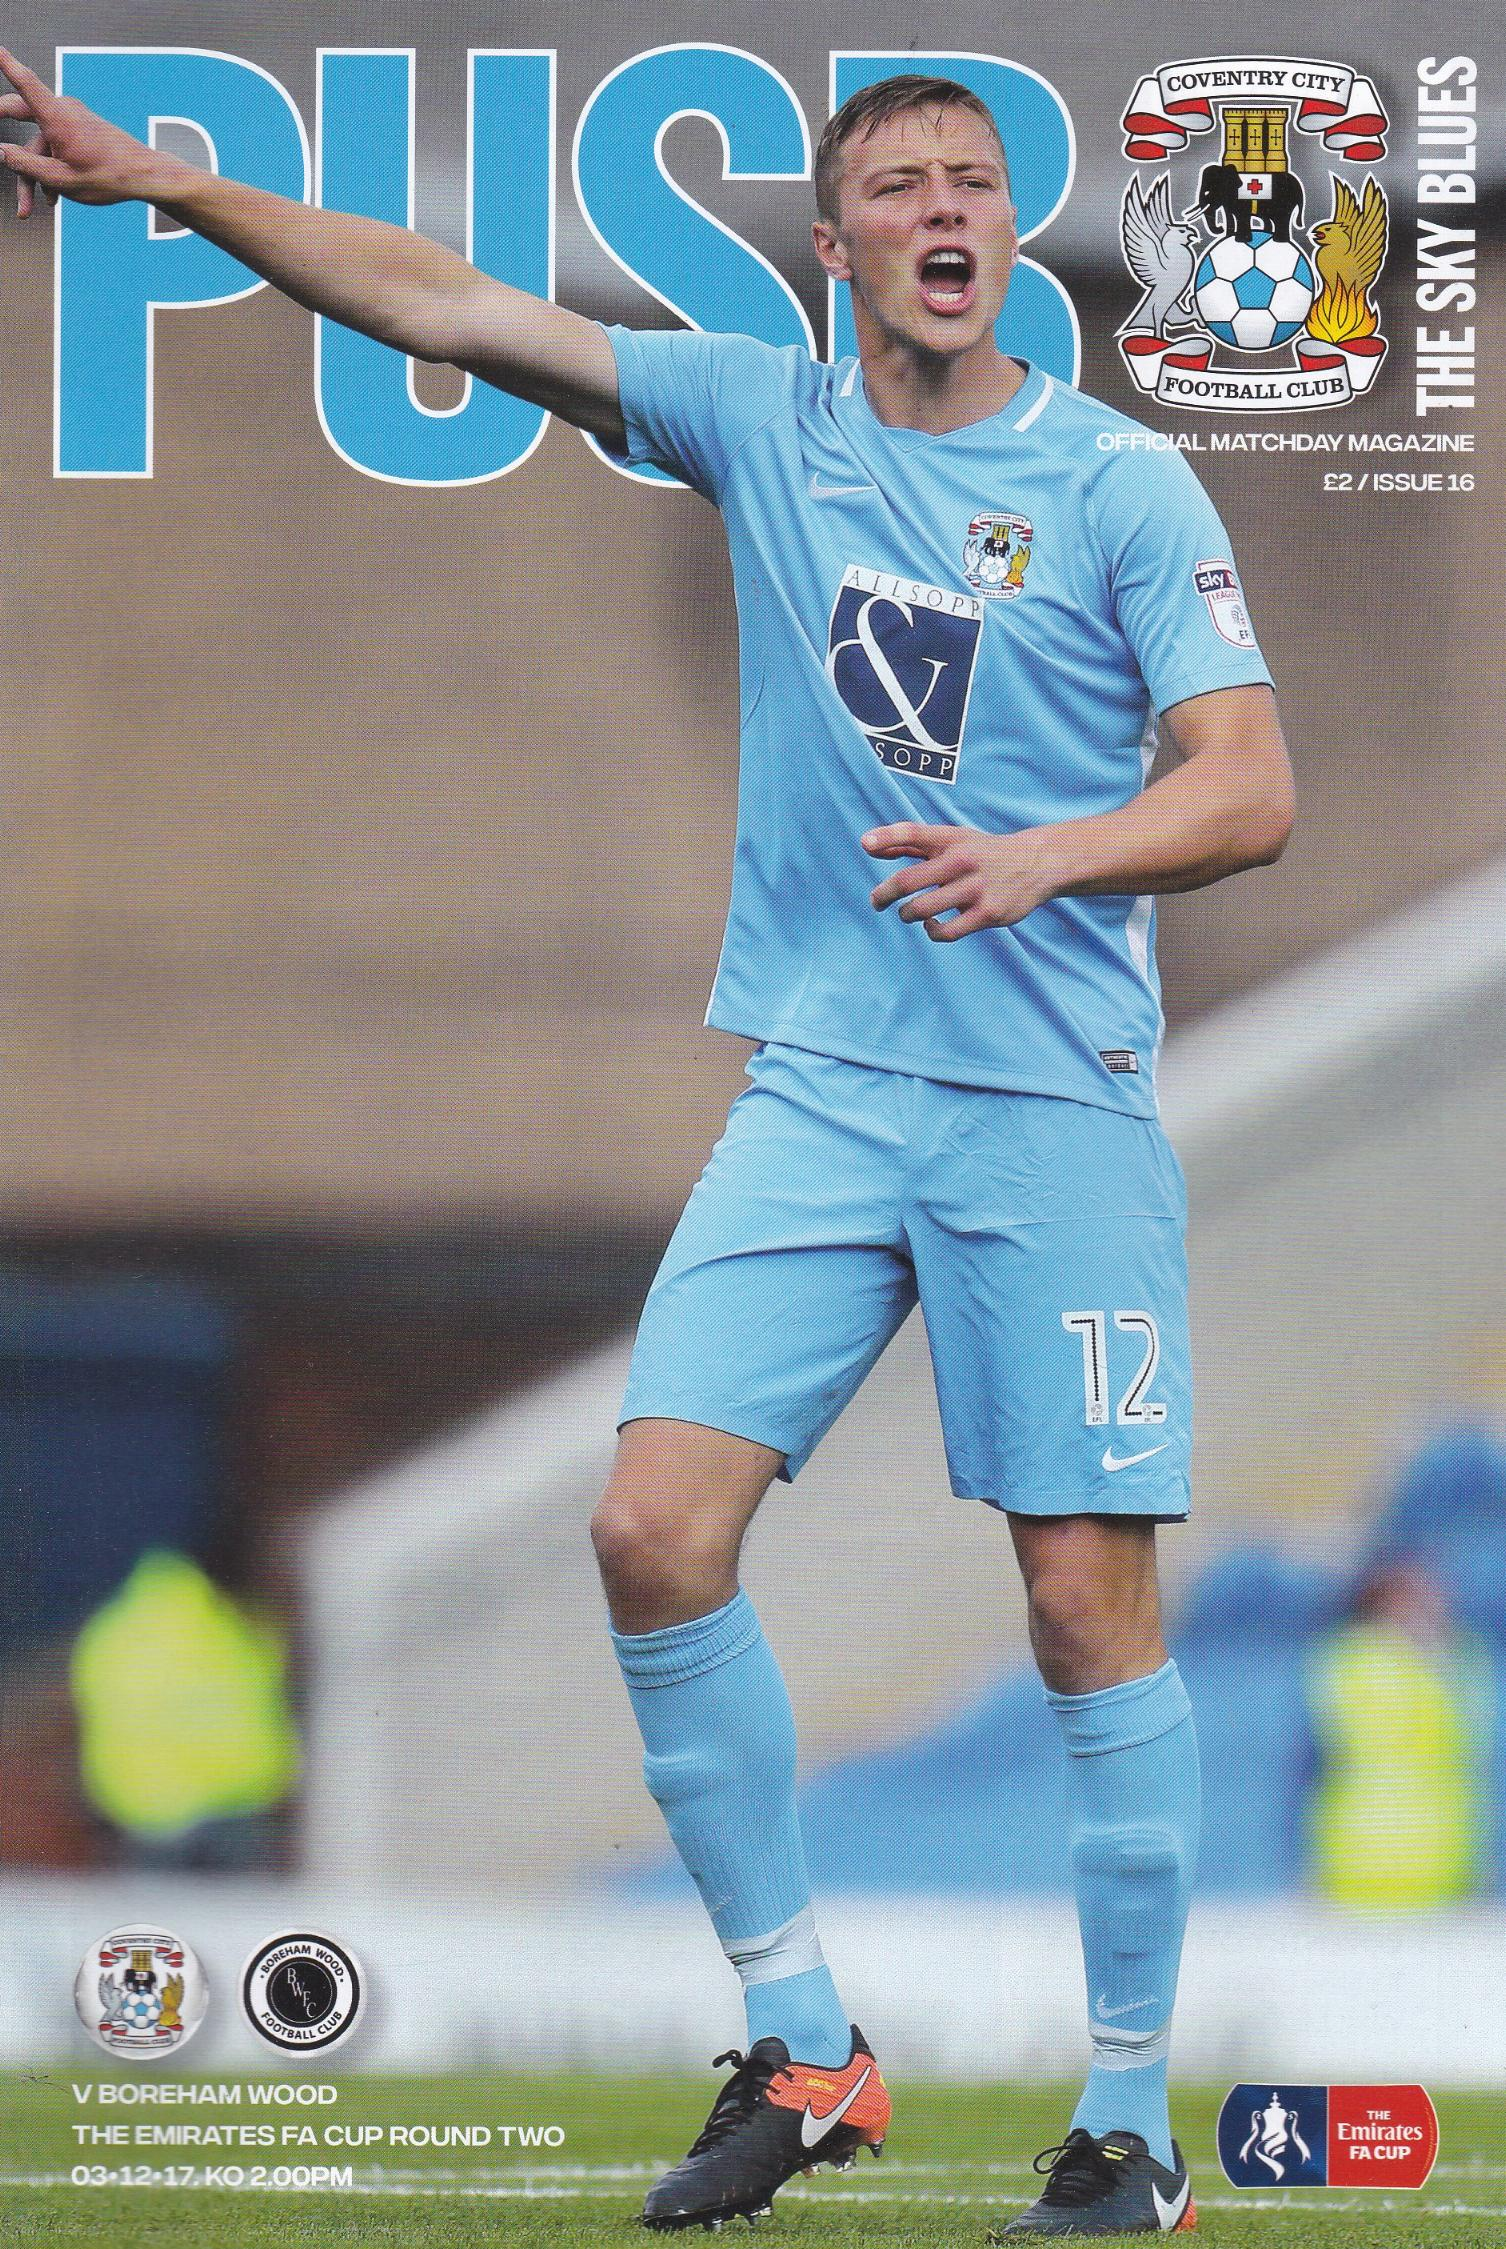 COVENTRY CITY v BOREHAM WOOD 2017/18 (FA CUP)